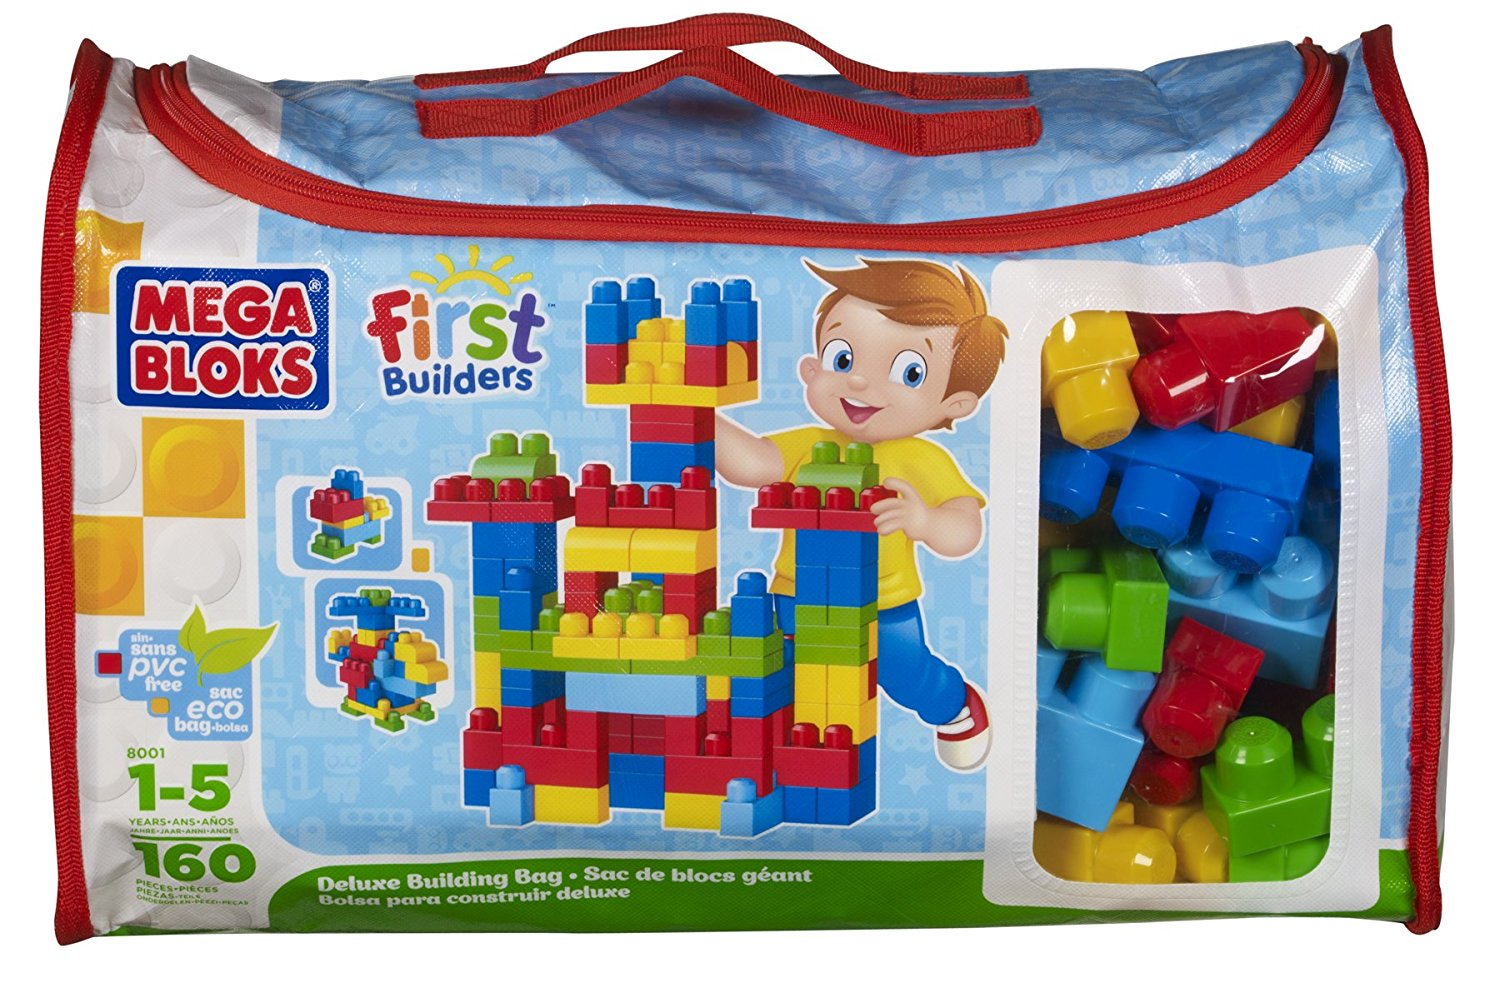 Mega Bloks First Builders Deluxe Building Bag Review Toyreview 23 99